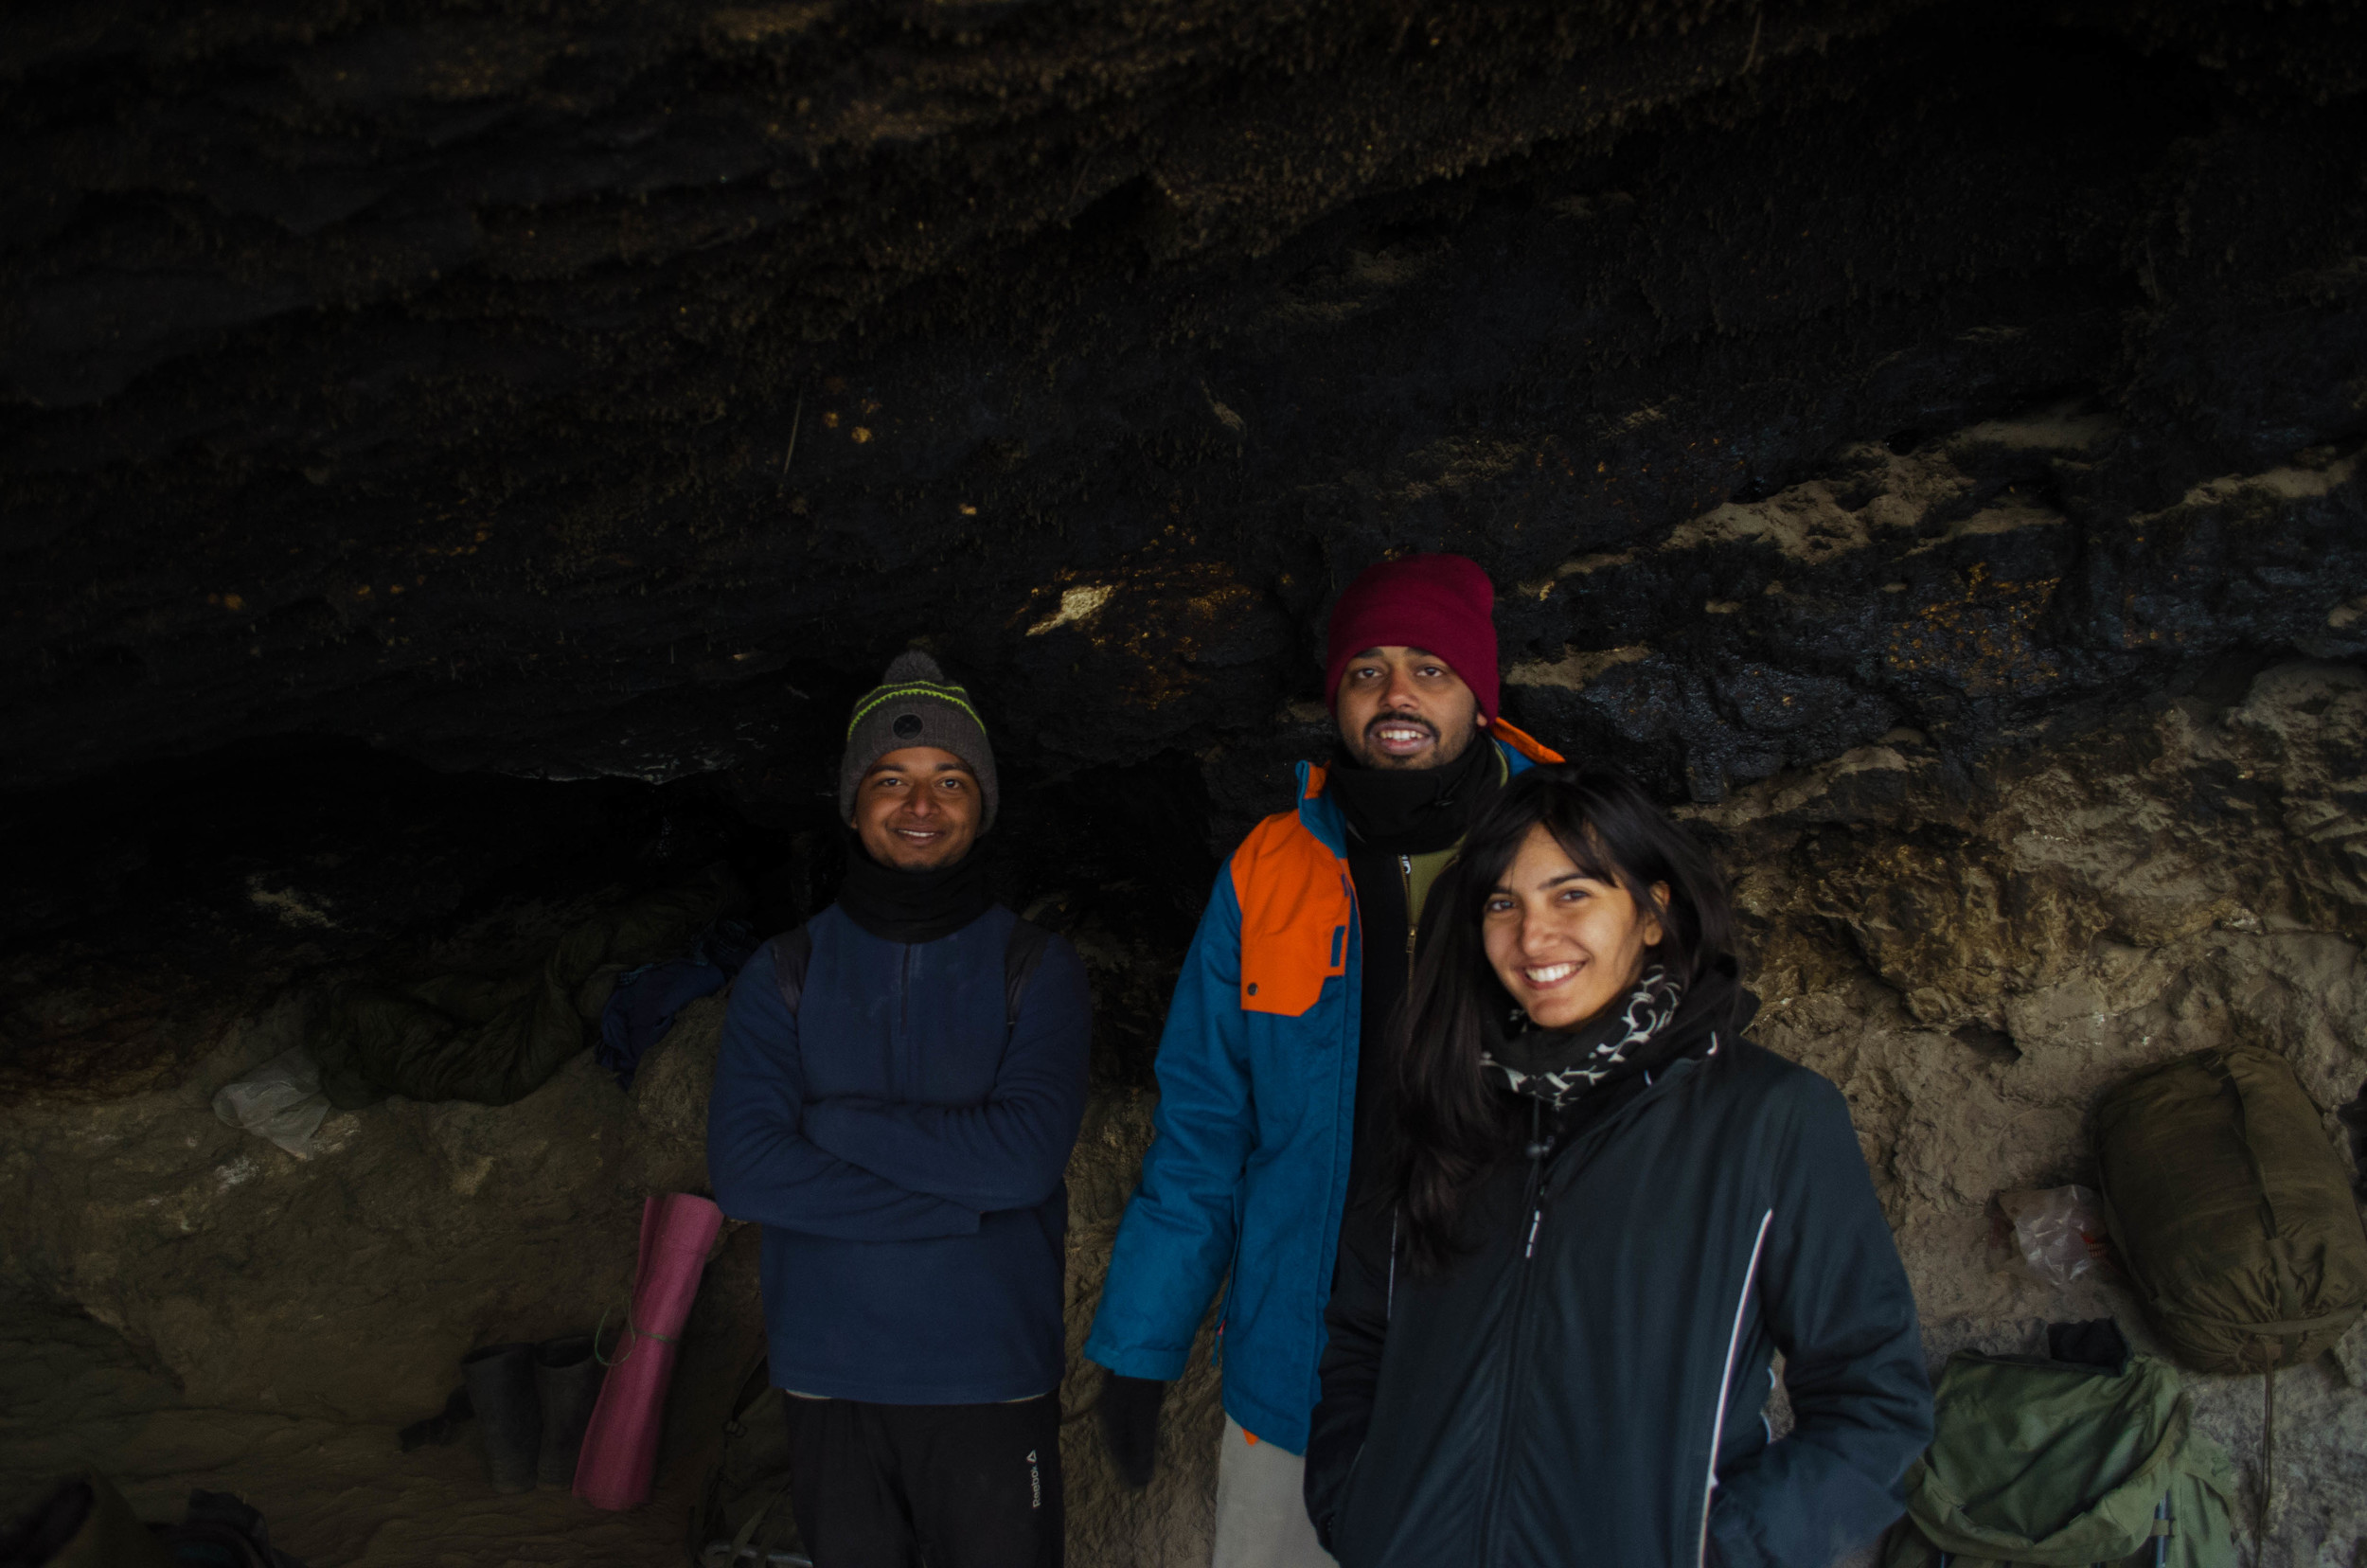 Huddled in the legendary Tibb cave for a photo-opp. PC: Raunak